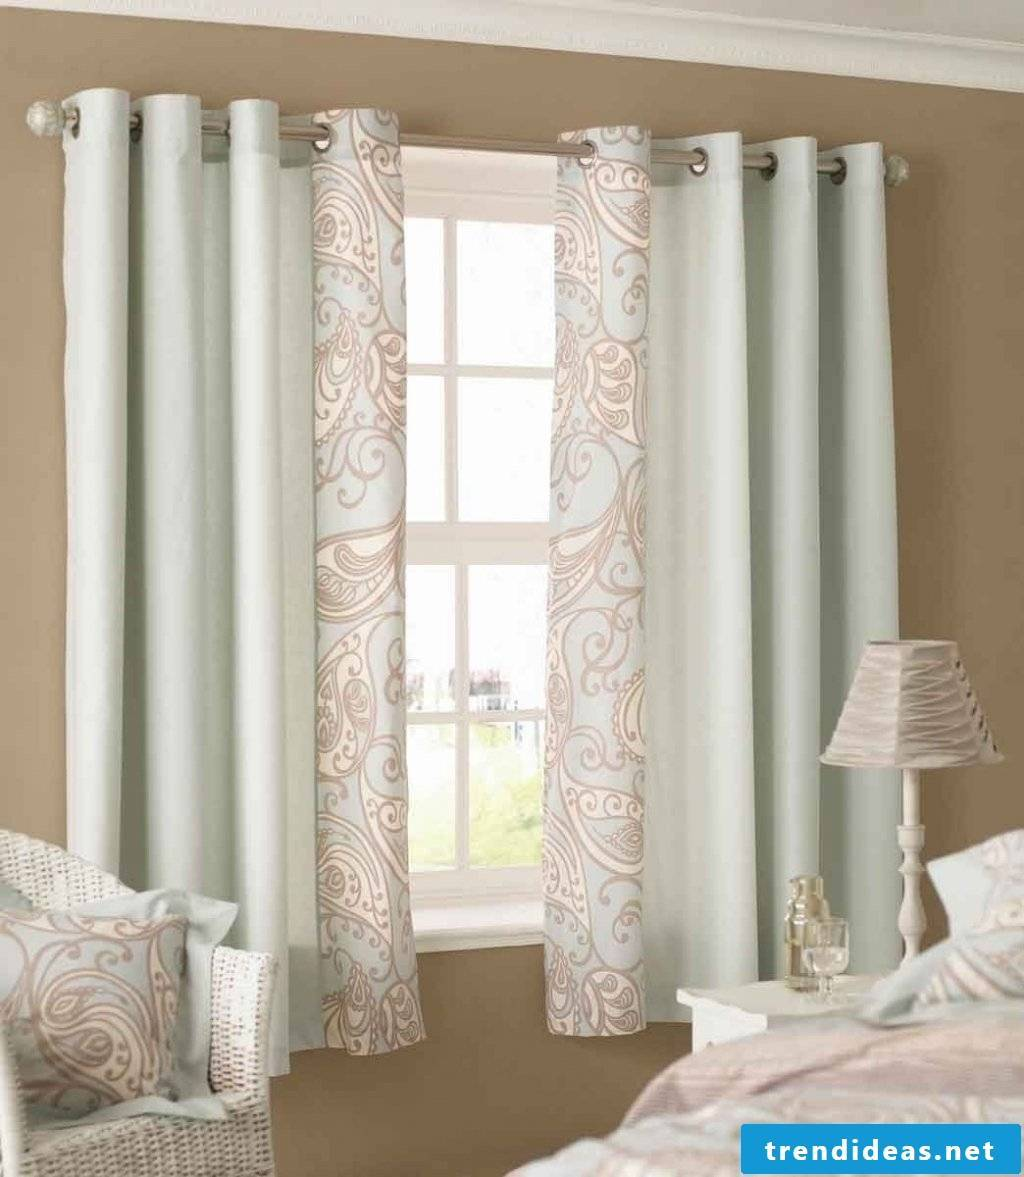 Curtains sewing ideas for beginners